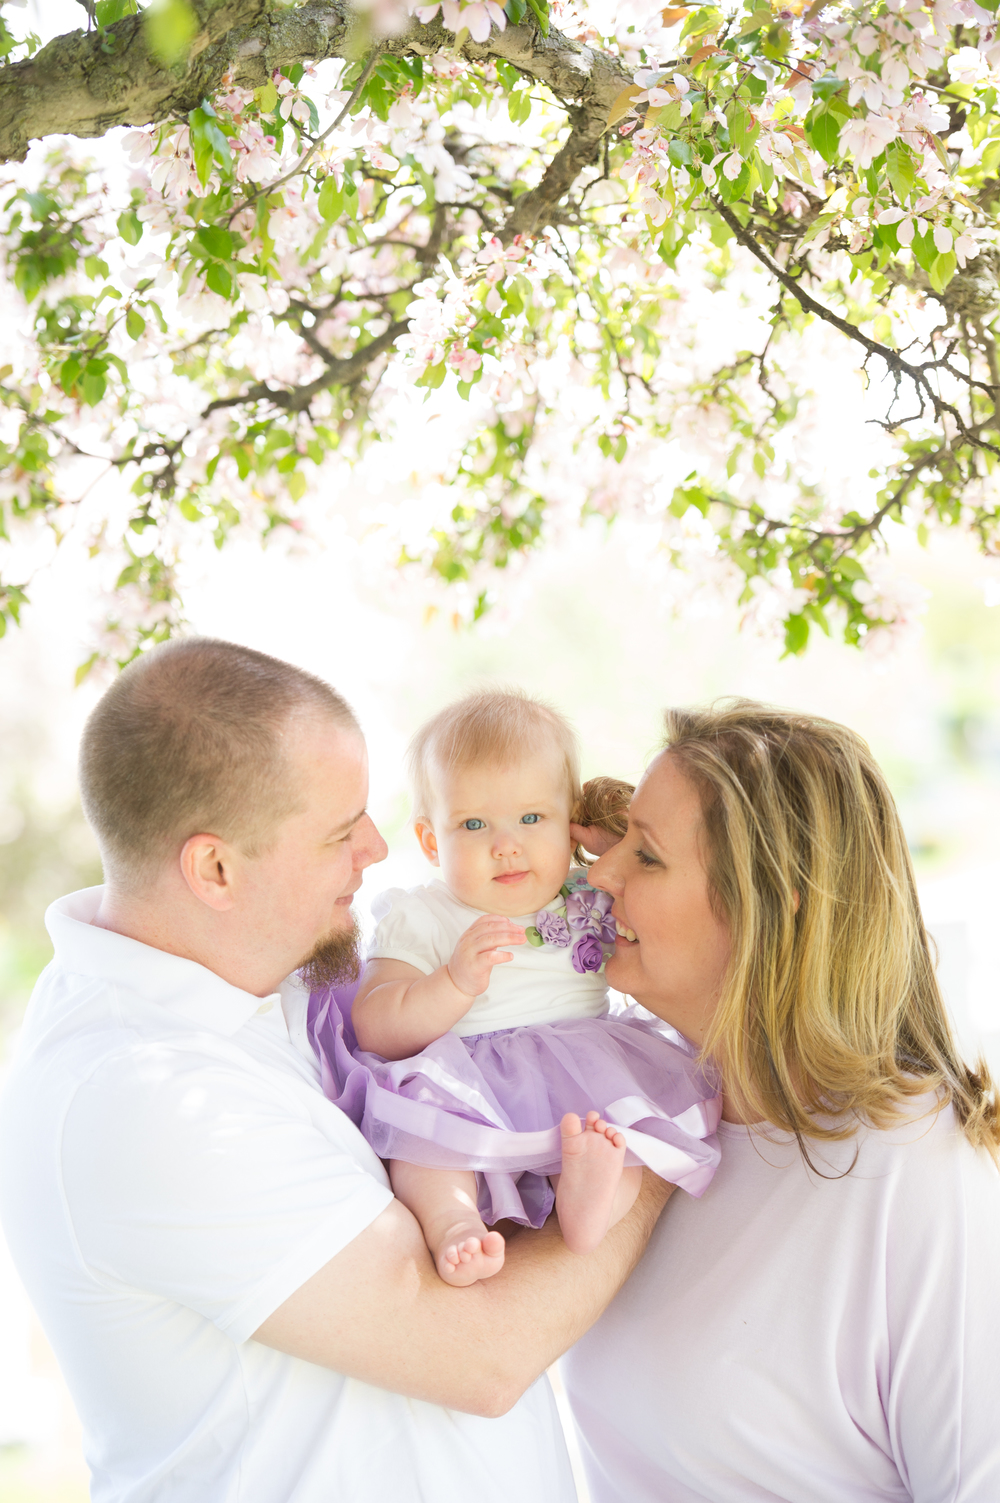 van Vliet Family Photo Session 2013-135-25.jpg